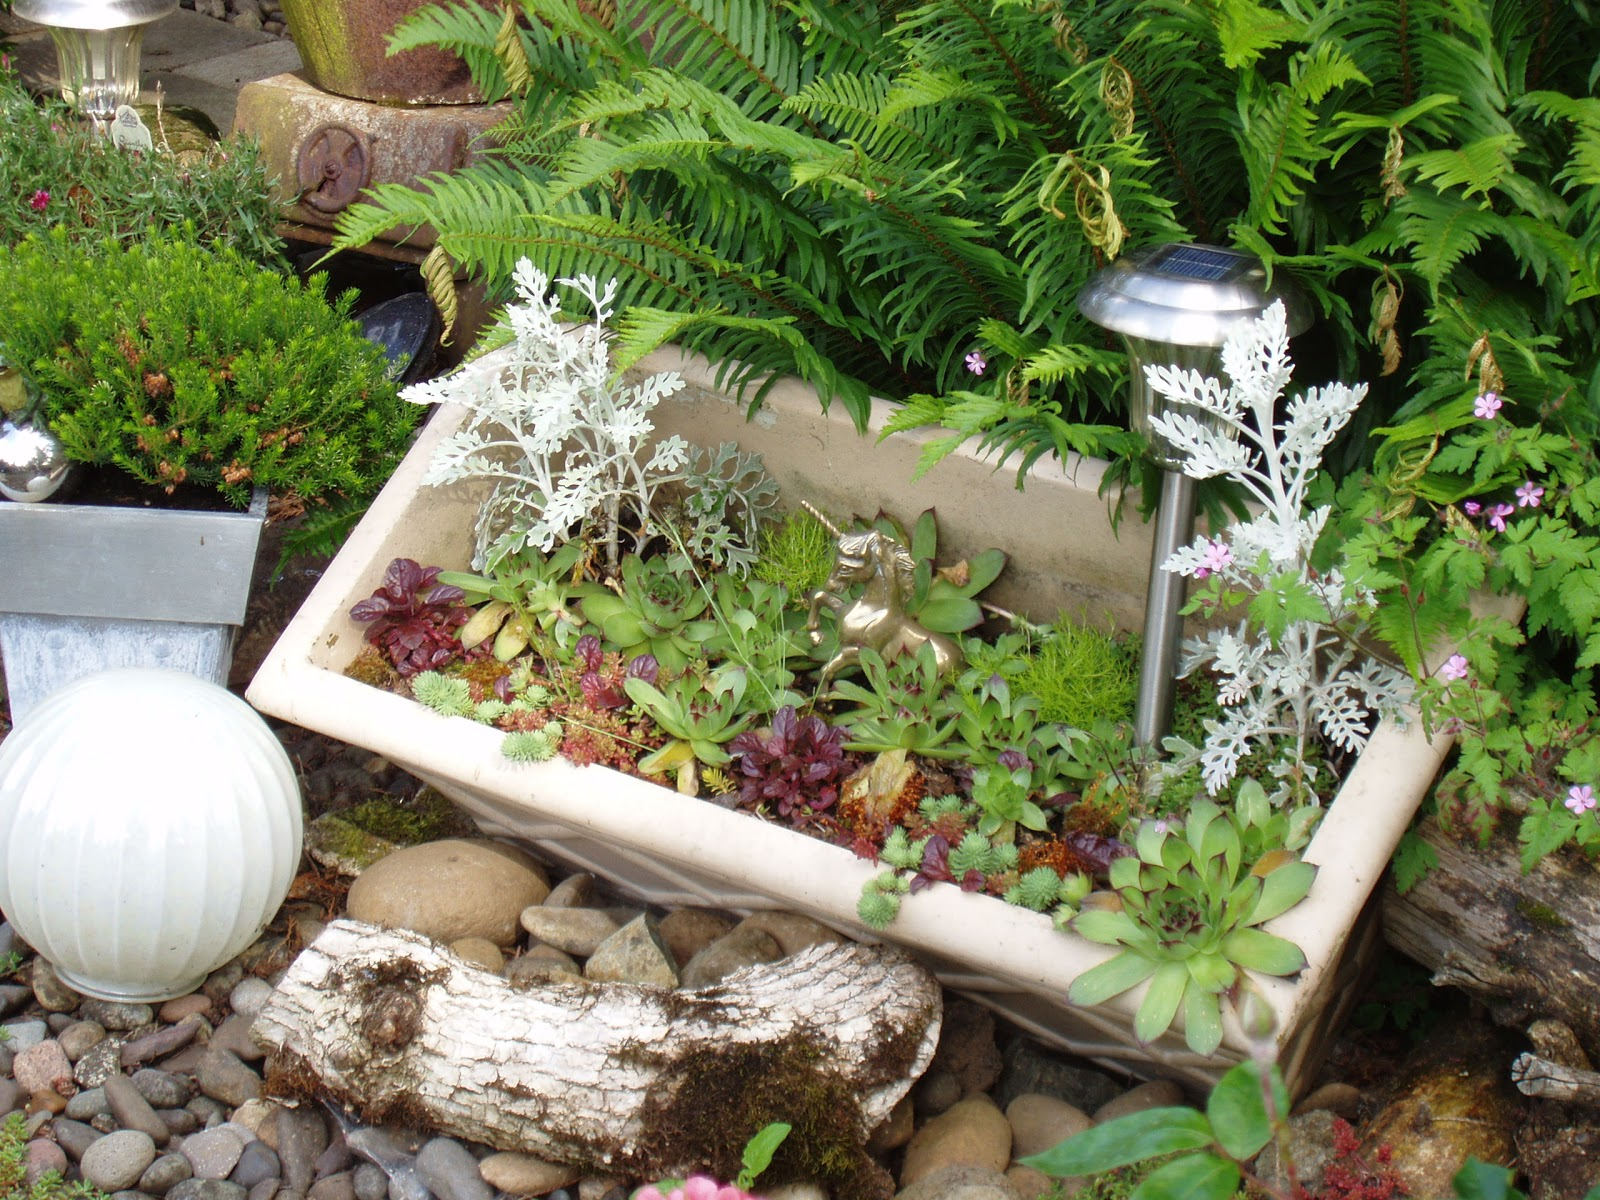 Refreshing Home: Some Nifty Yard and Garden Ideas